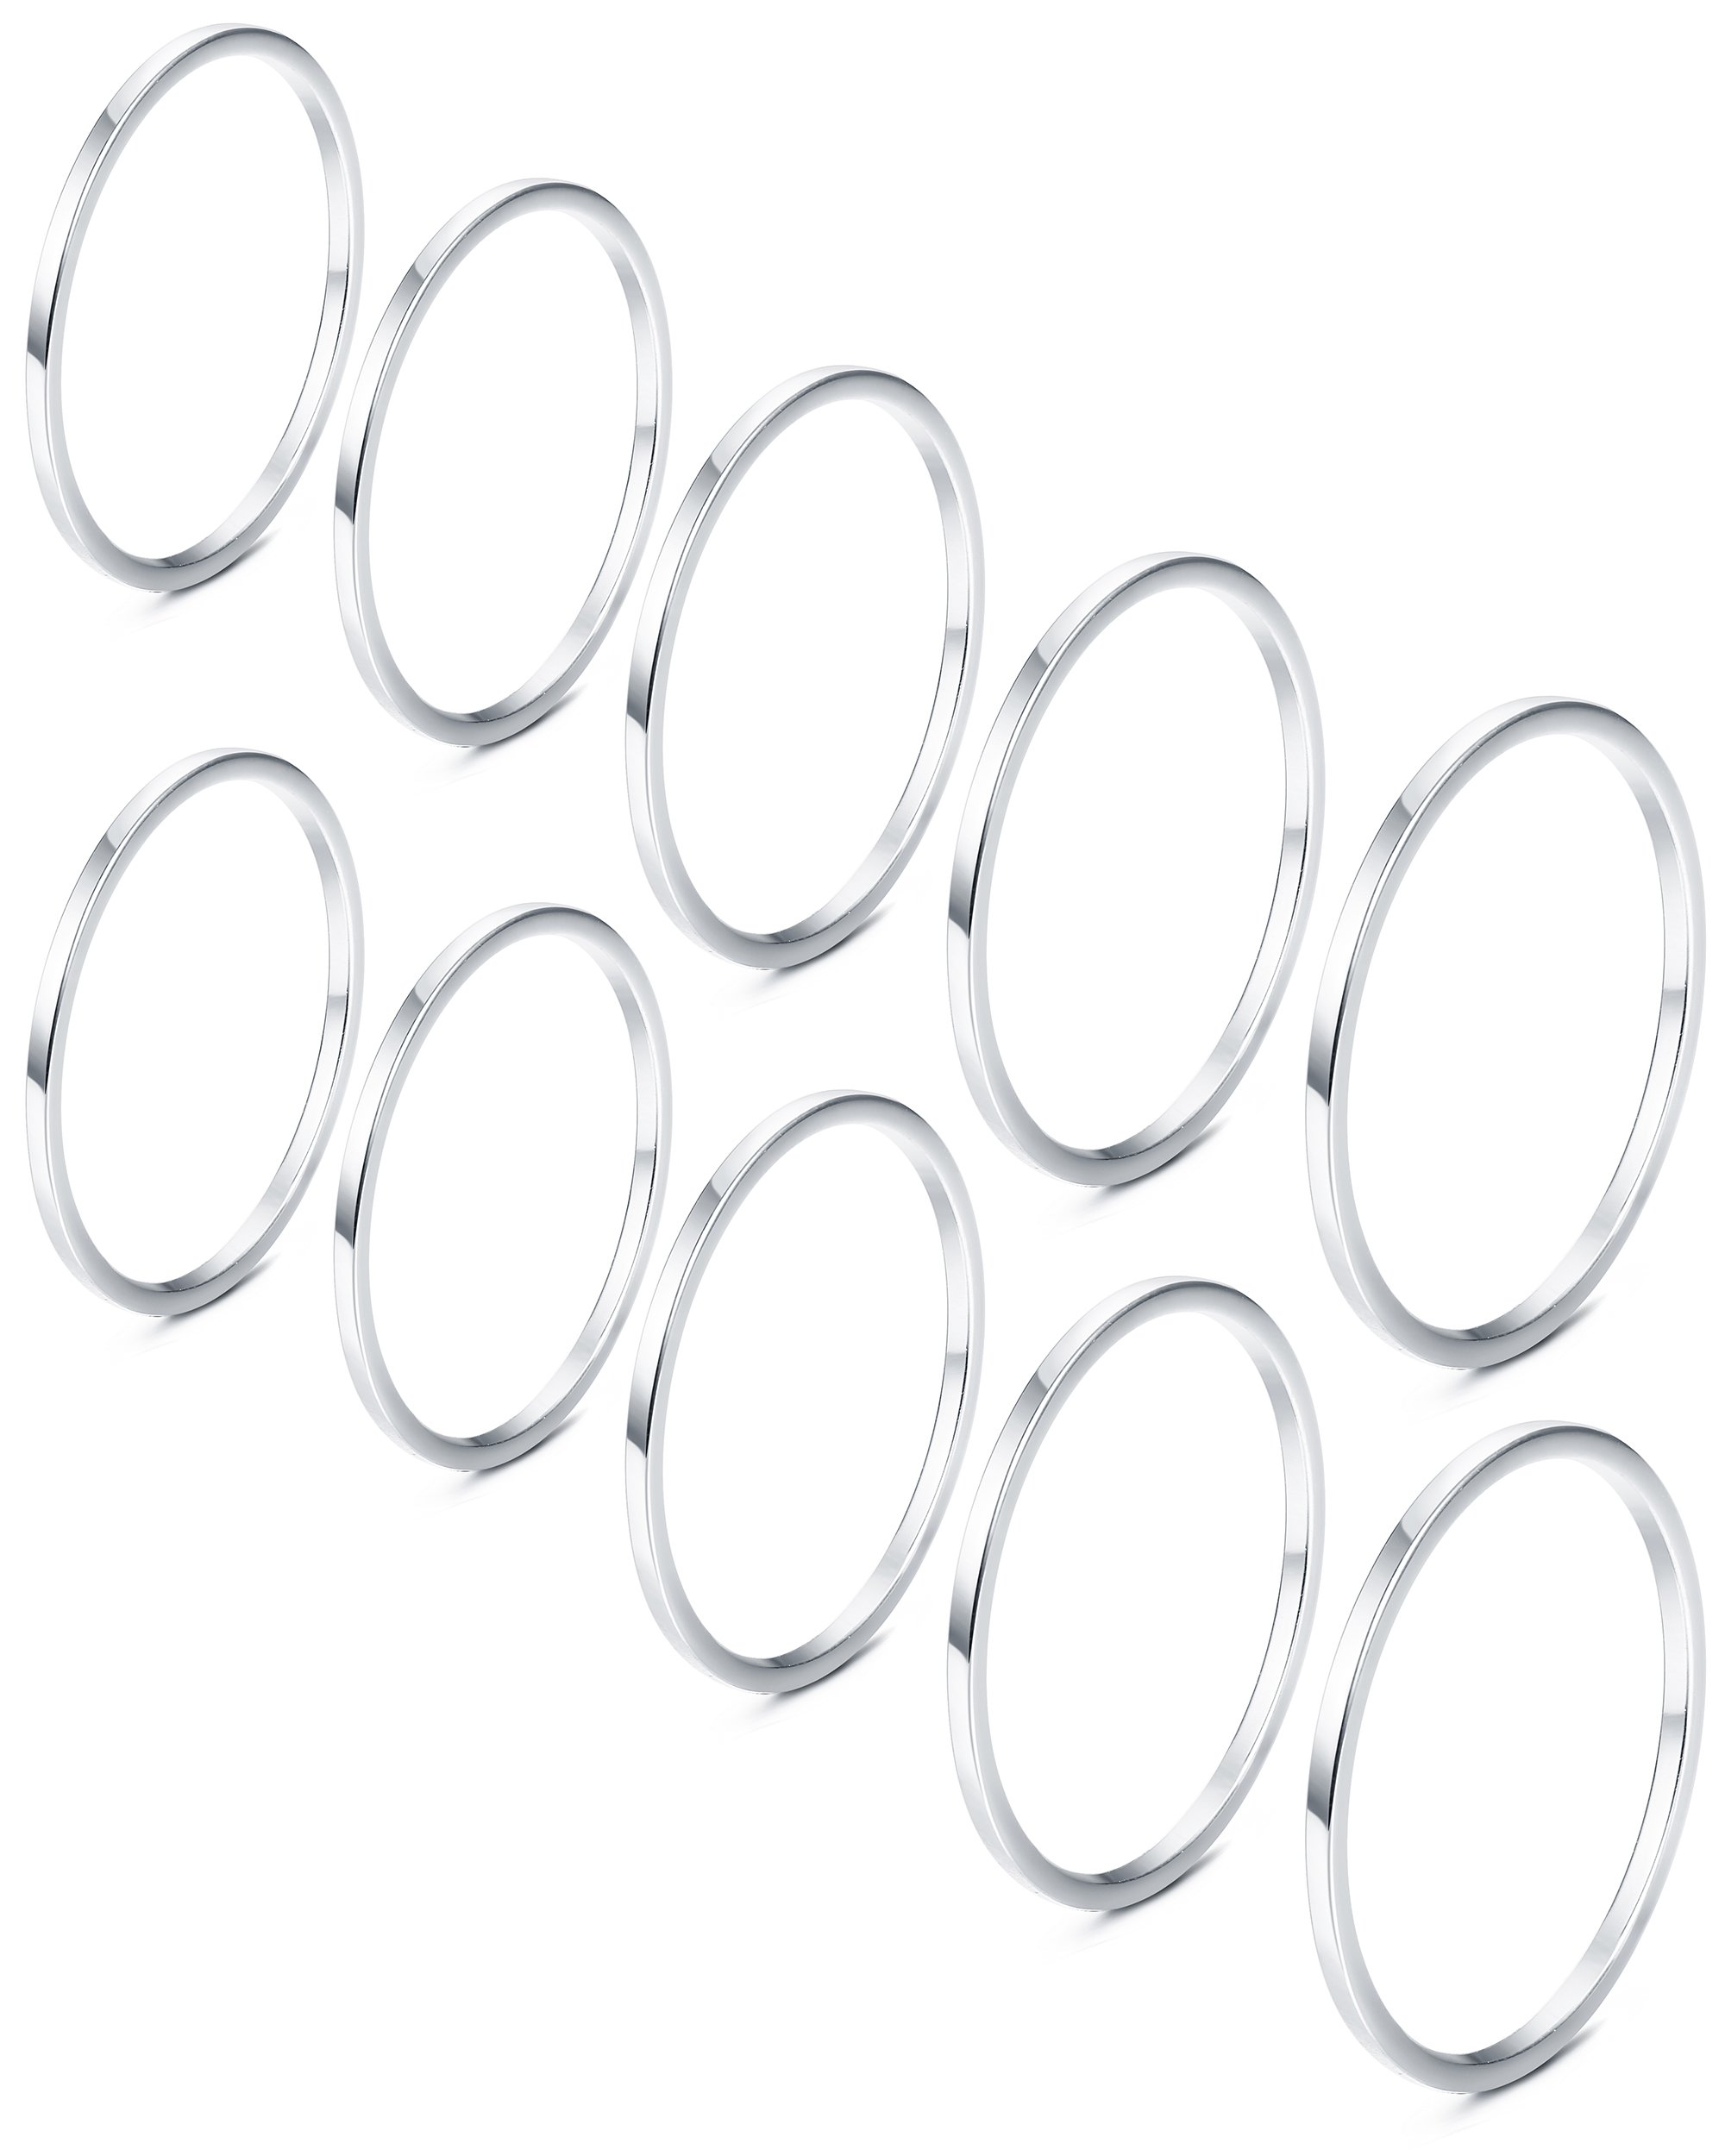 JOERICA 10Pcs Stainless Steel Women's Band Knuckle Stacking Midi Ring Silver-tone